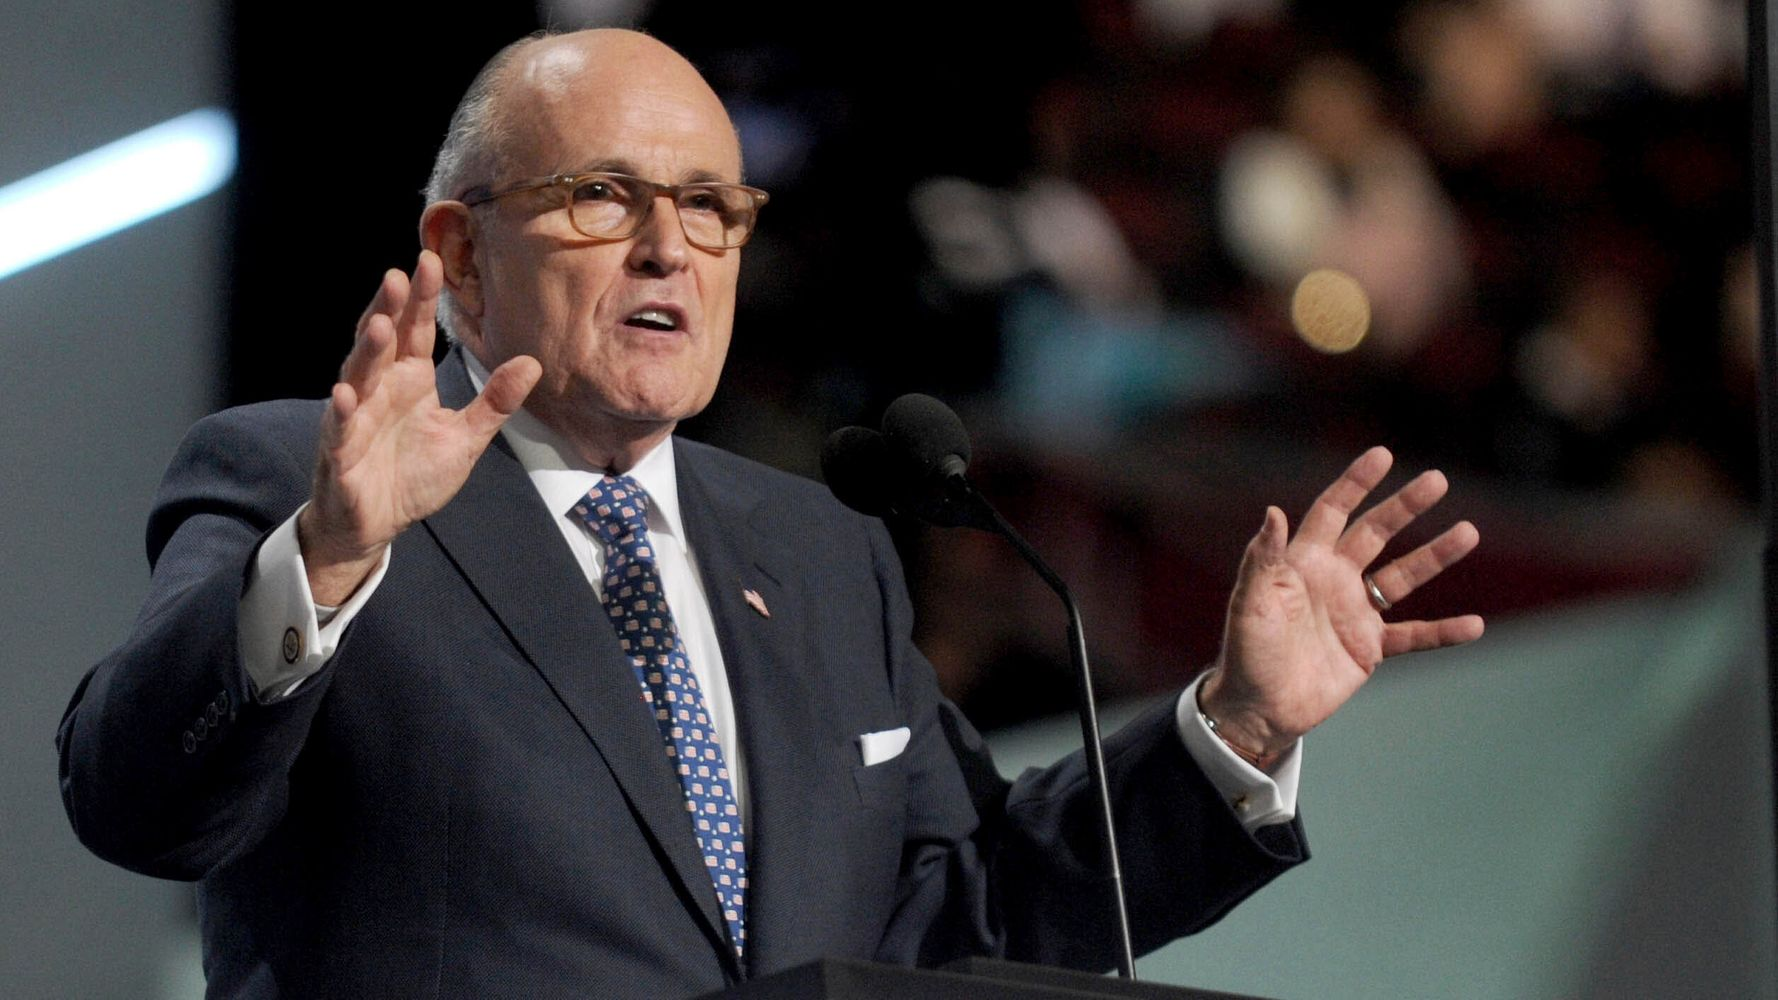 Dominion Voting Systems Sues Rudy Giuliani For Defamation, Seeks $1.3 Billion